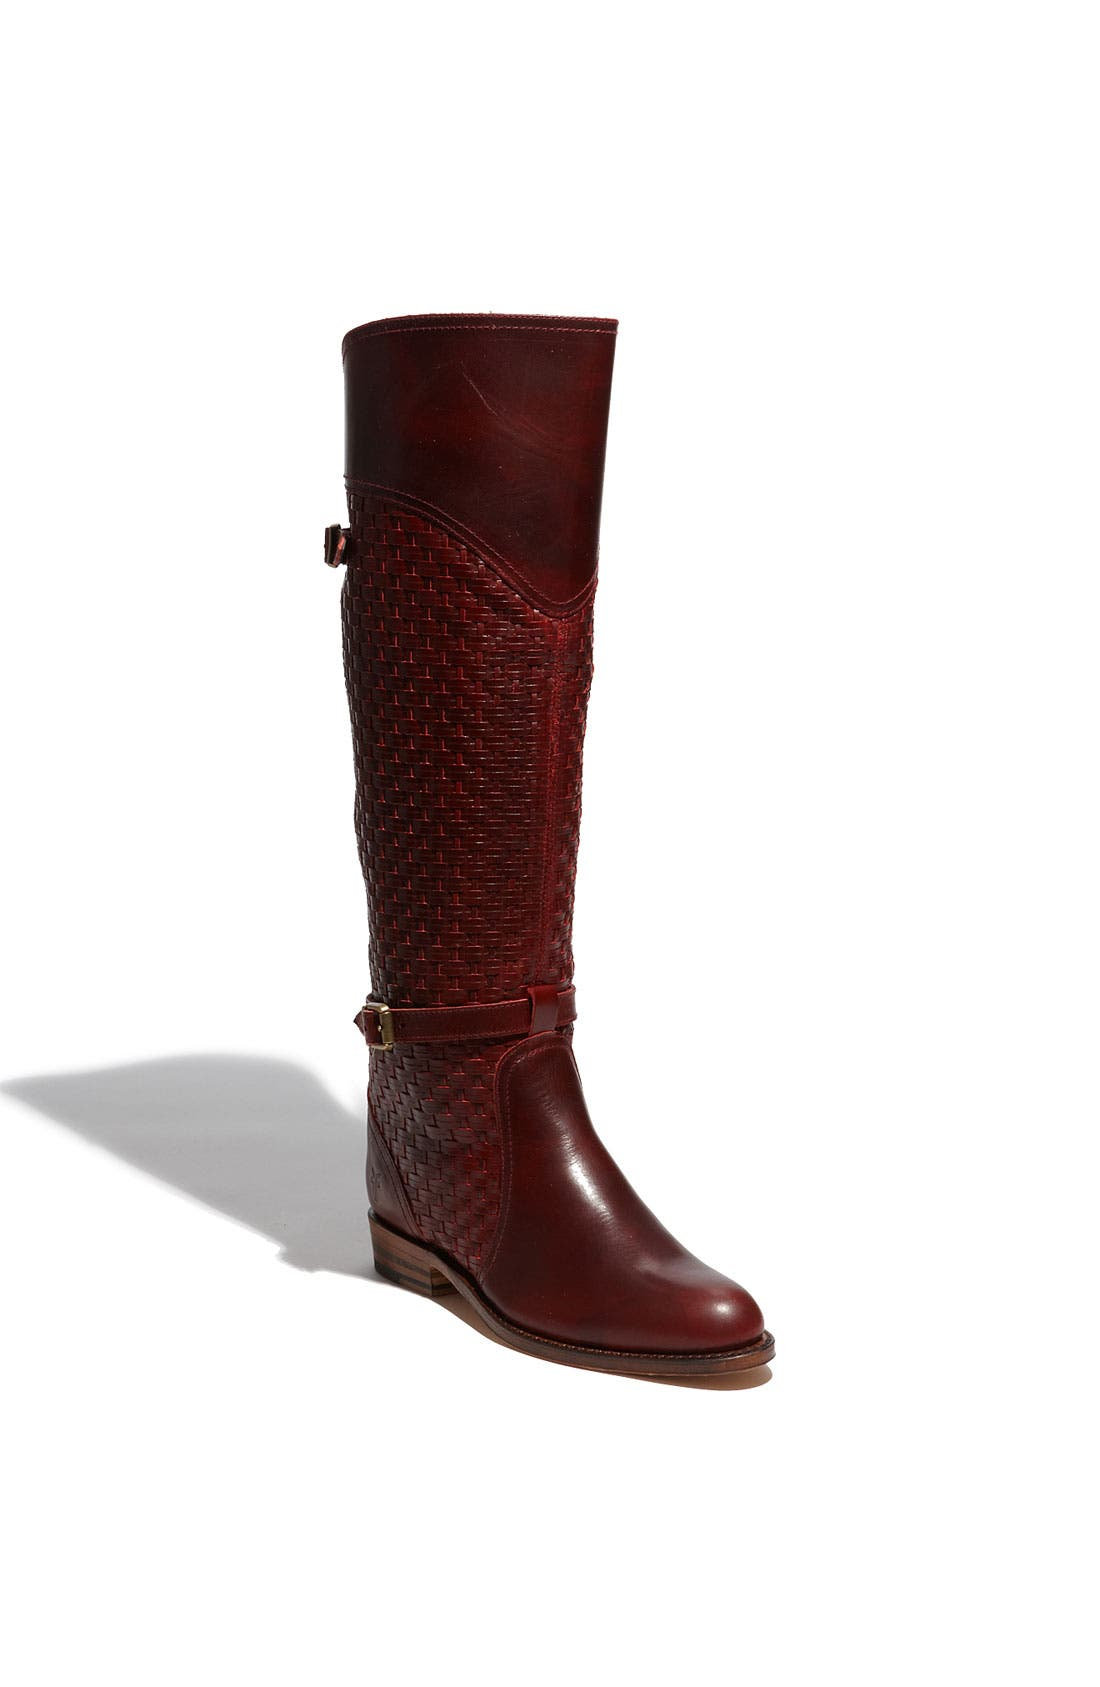 Main Image - Frye 'Dorado' Riding Boot